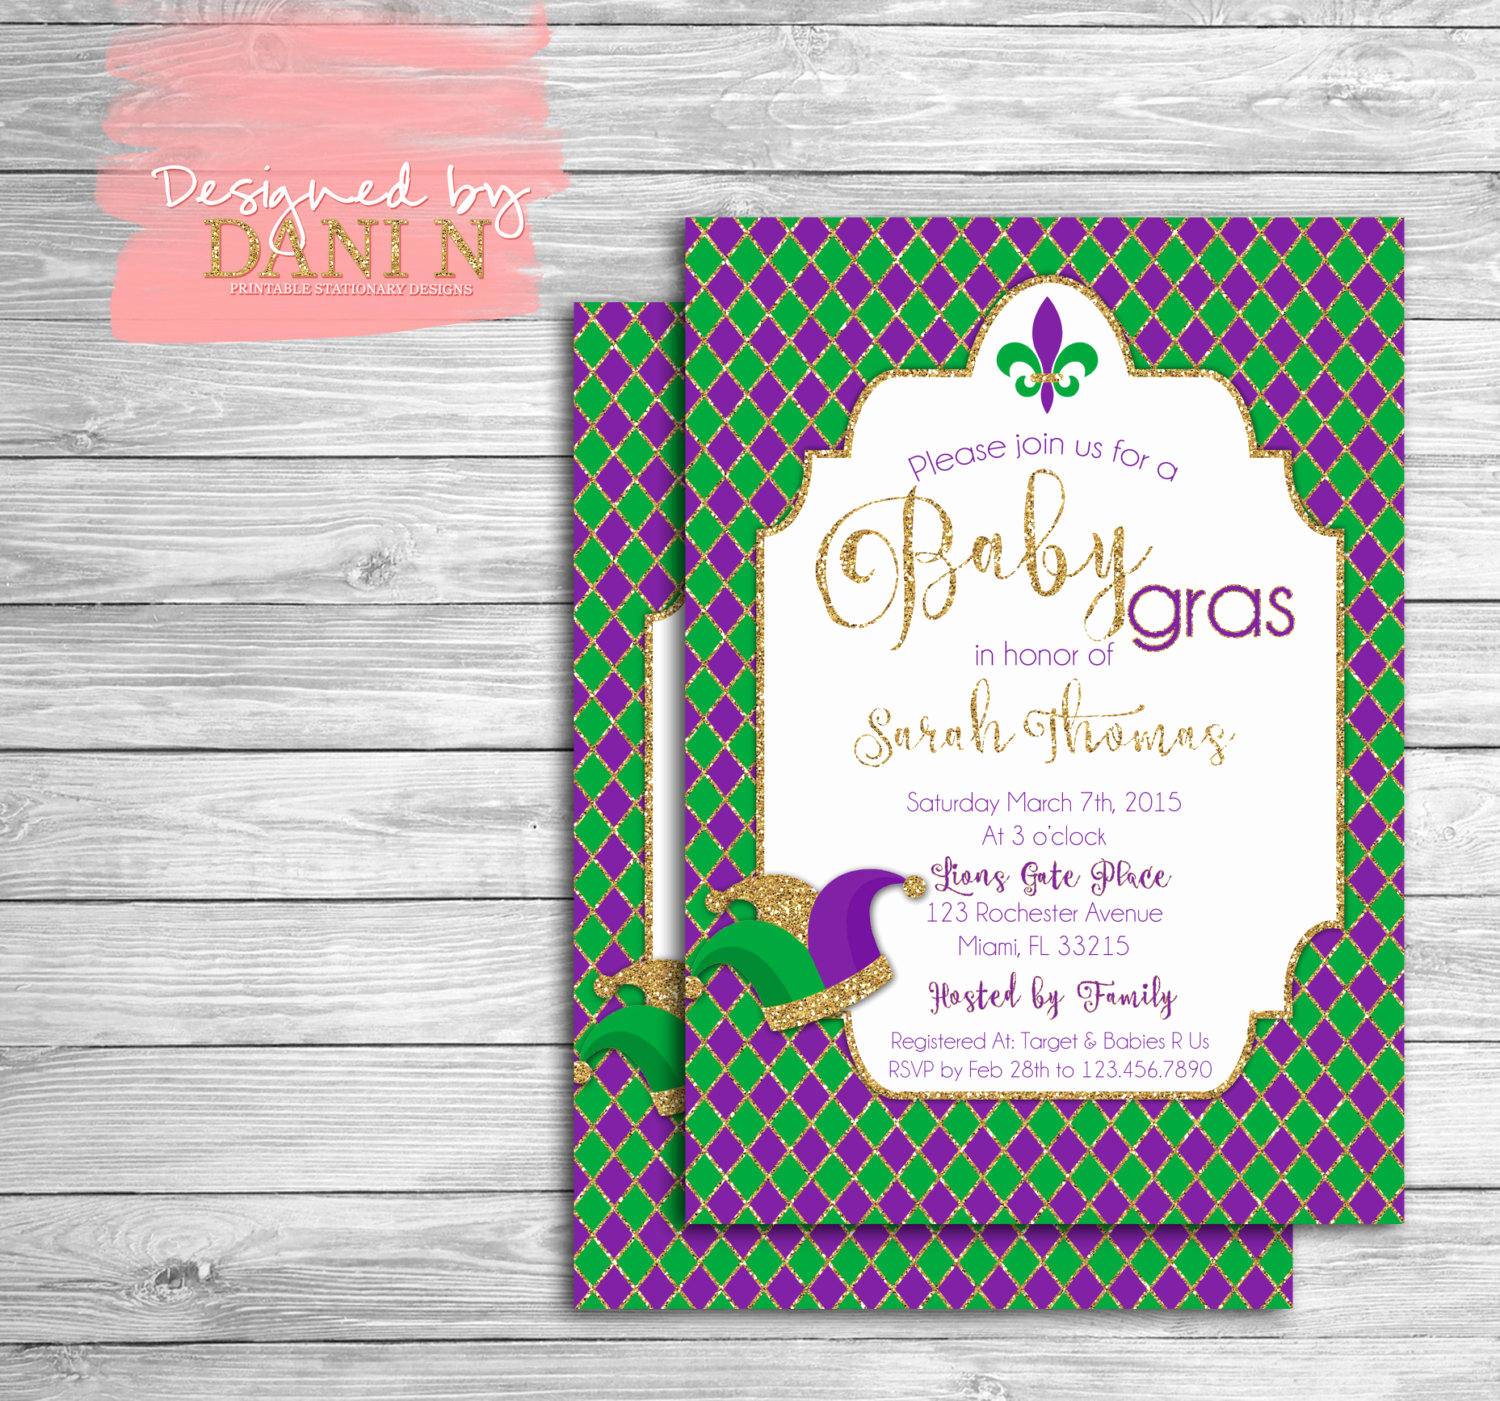 Mardi Gras Invitation Wording Elegant Mardi Gras Invitation Baby Shower Mardi Gras Party Invites